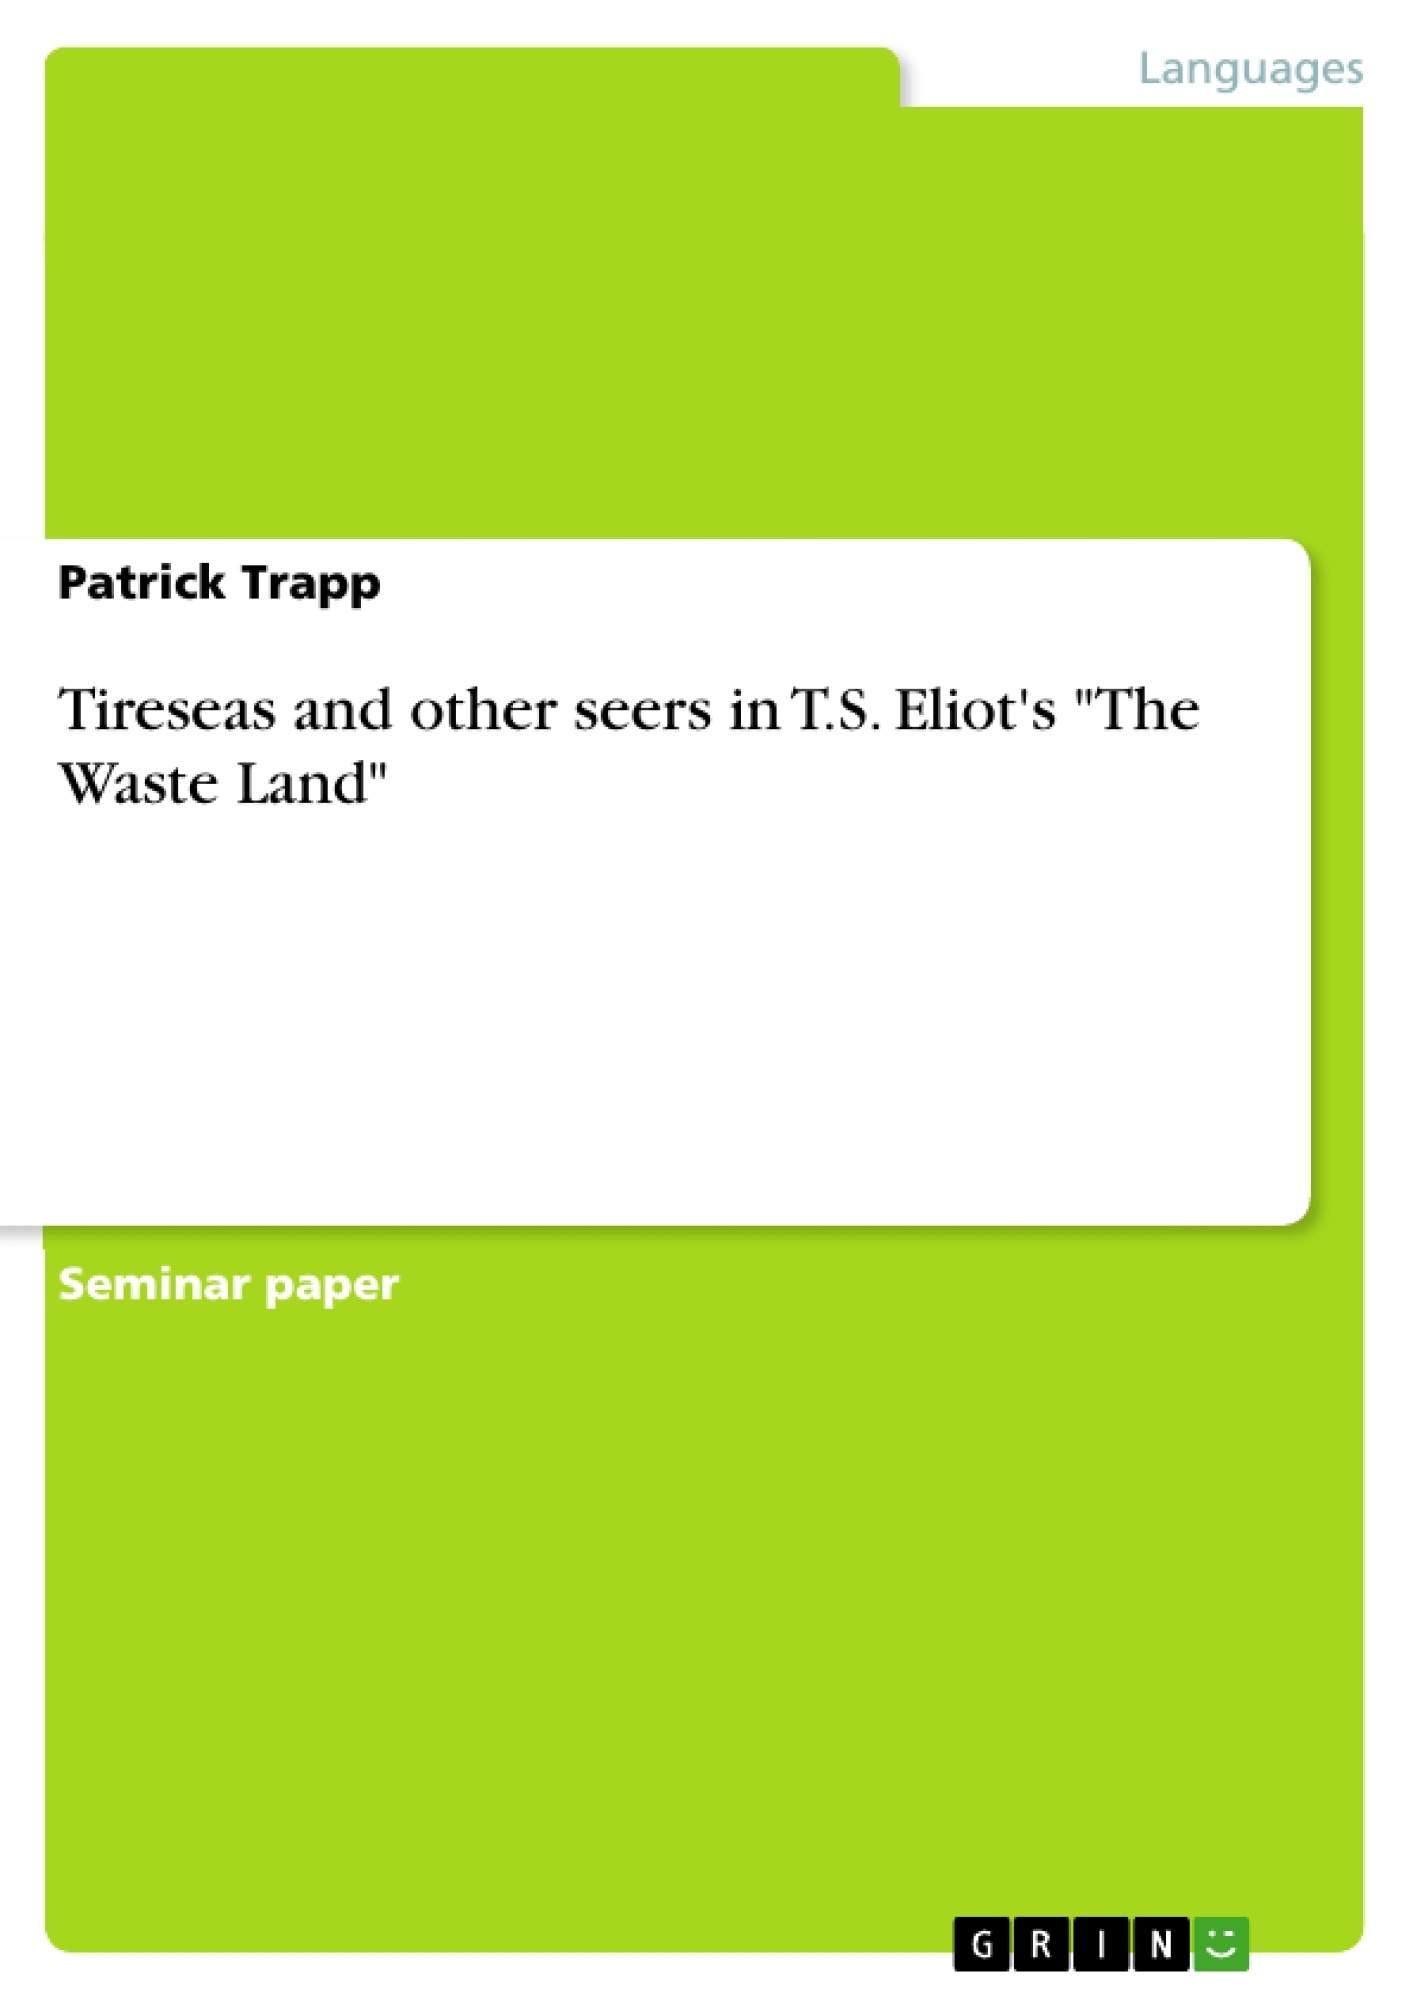 """Title: Tireseas and other seers in T.S. Eliot's """"The Waste Land"""""""